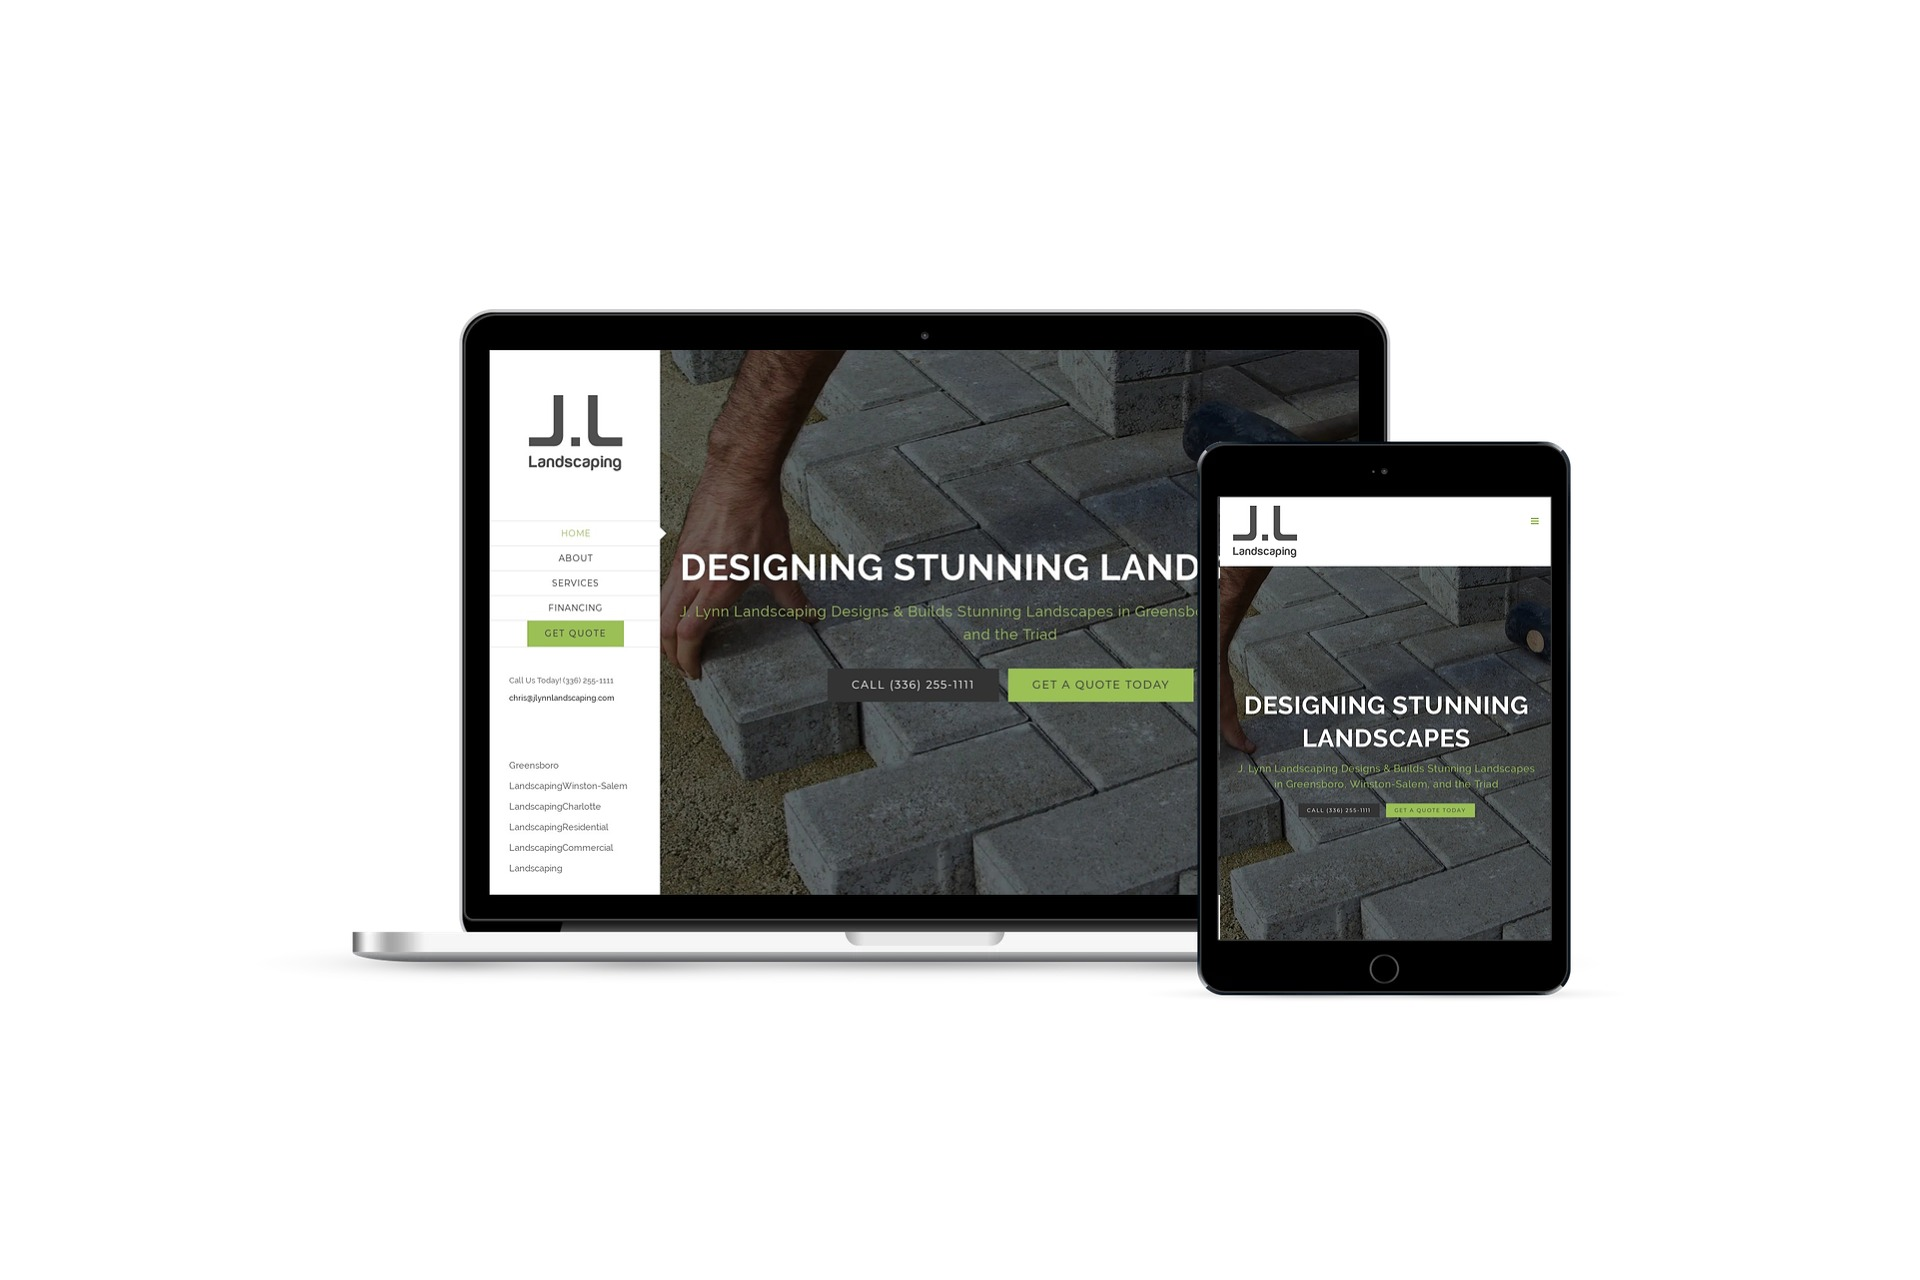 J. Lynn Landscaping Website Design & Marketing